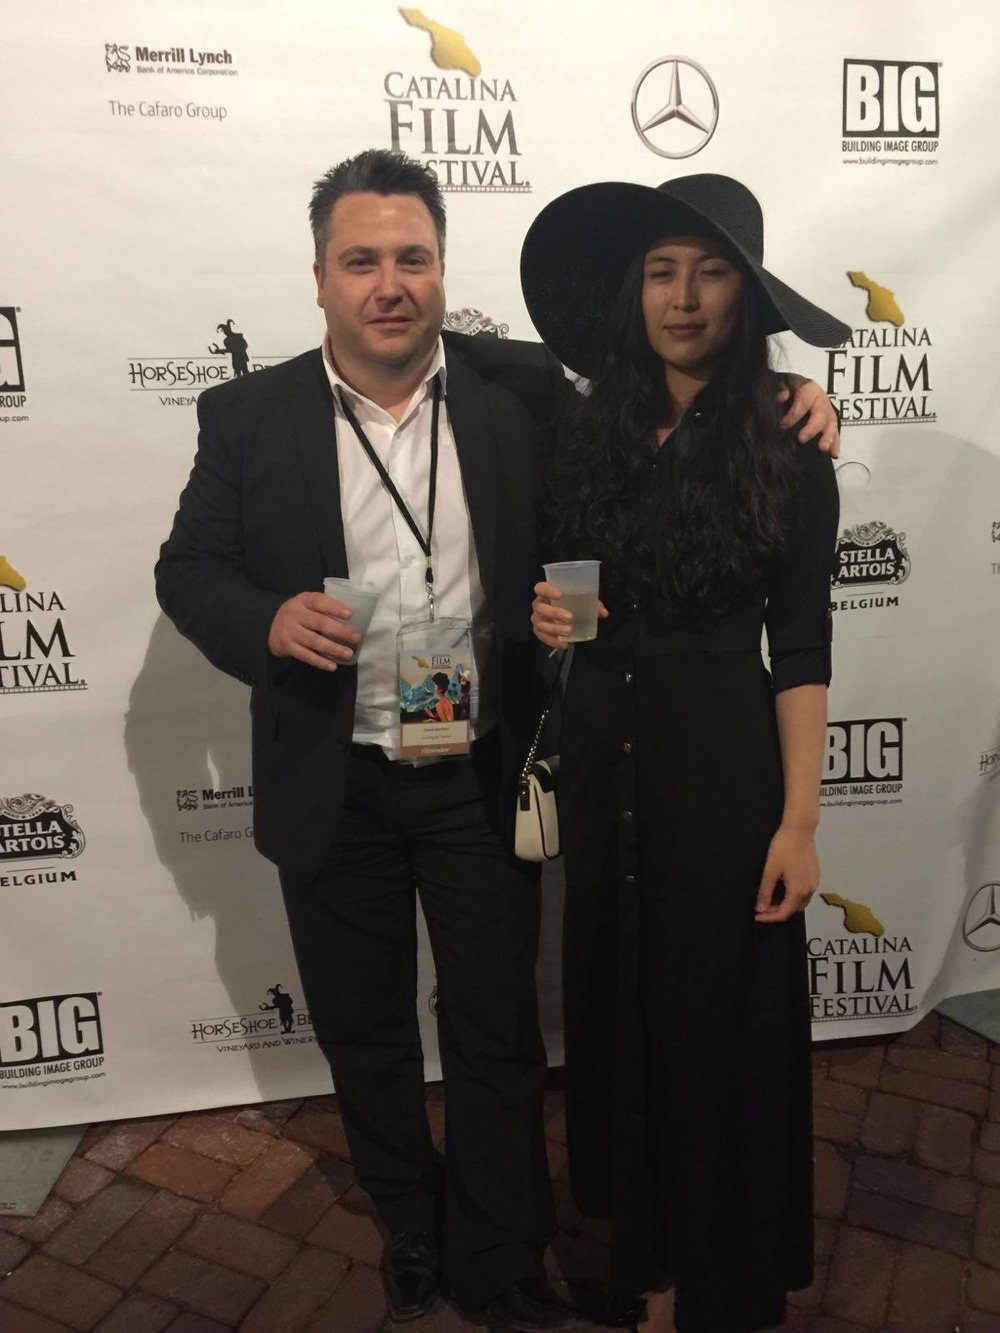 Award of Excellence at Catalina Film Festival (2016)